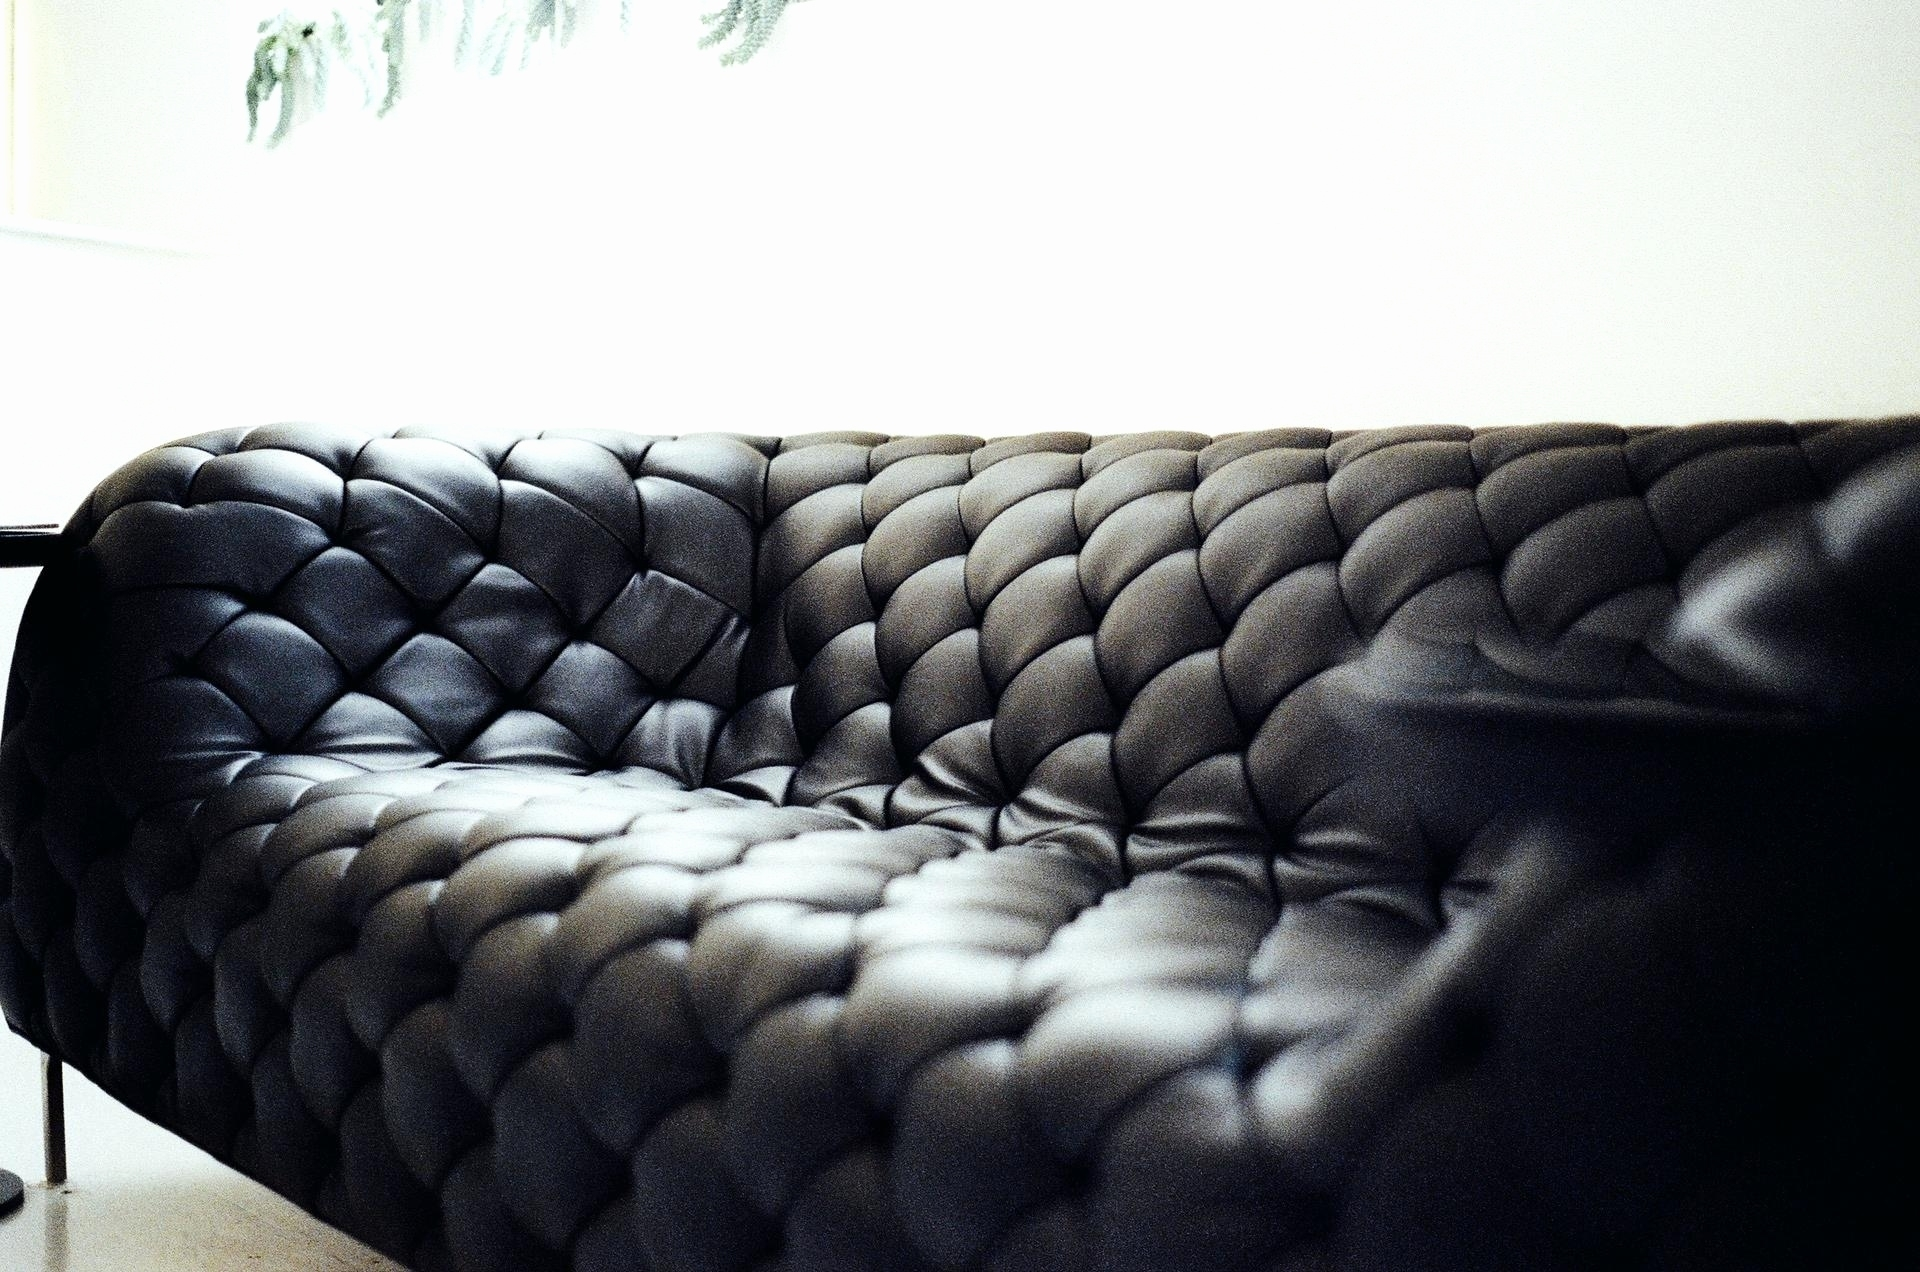 Elegant Modern Leather Sofas For Sale 2018 – Couches And Sofas Ideas with regard to Sectional Sofas at Barrie (Image 6 of 15)